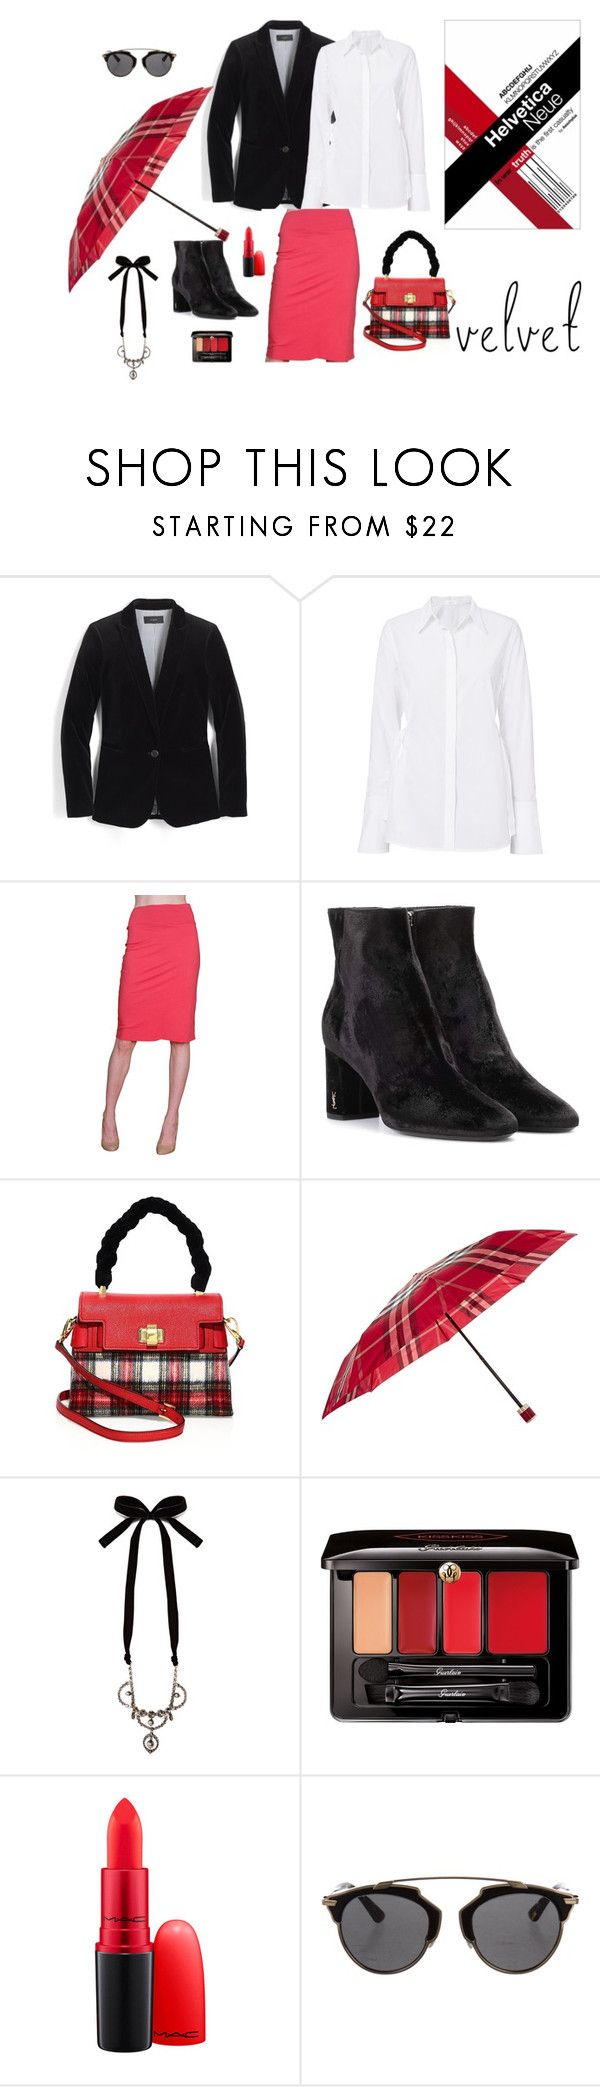 """""""Something red"""" by fernandaalmeida-1 on Polyvore featuring J.Crew, Velvet by Graham & Spencer, Yves Saint Laurent, Miu Miu, Burberry, Guerlain and Christian Dior"""